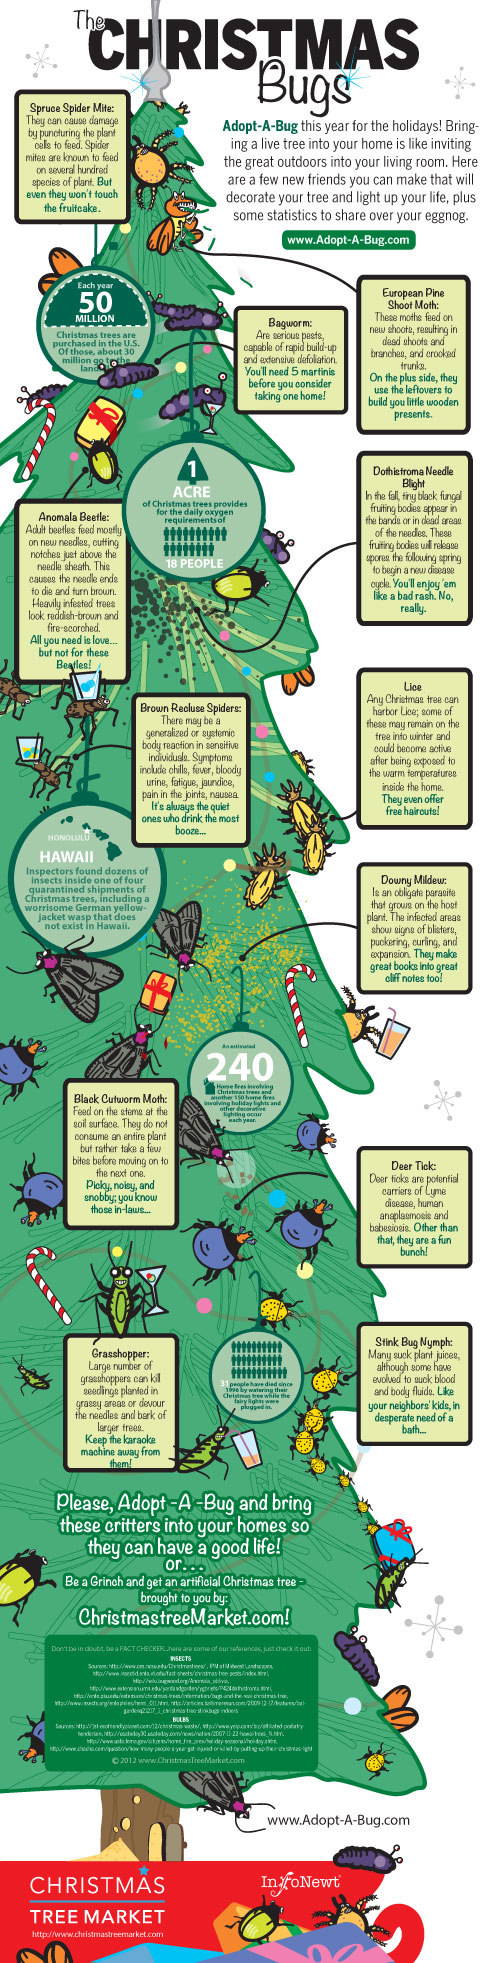 CTM Tree Bugs Infographic DRAFT E 500px.jpg